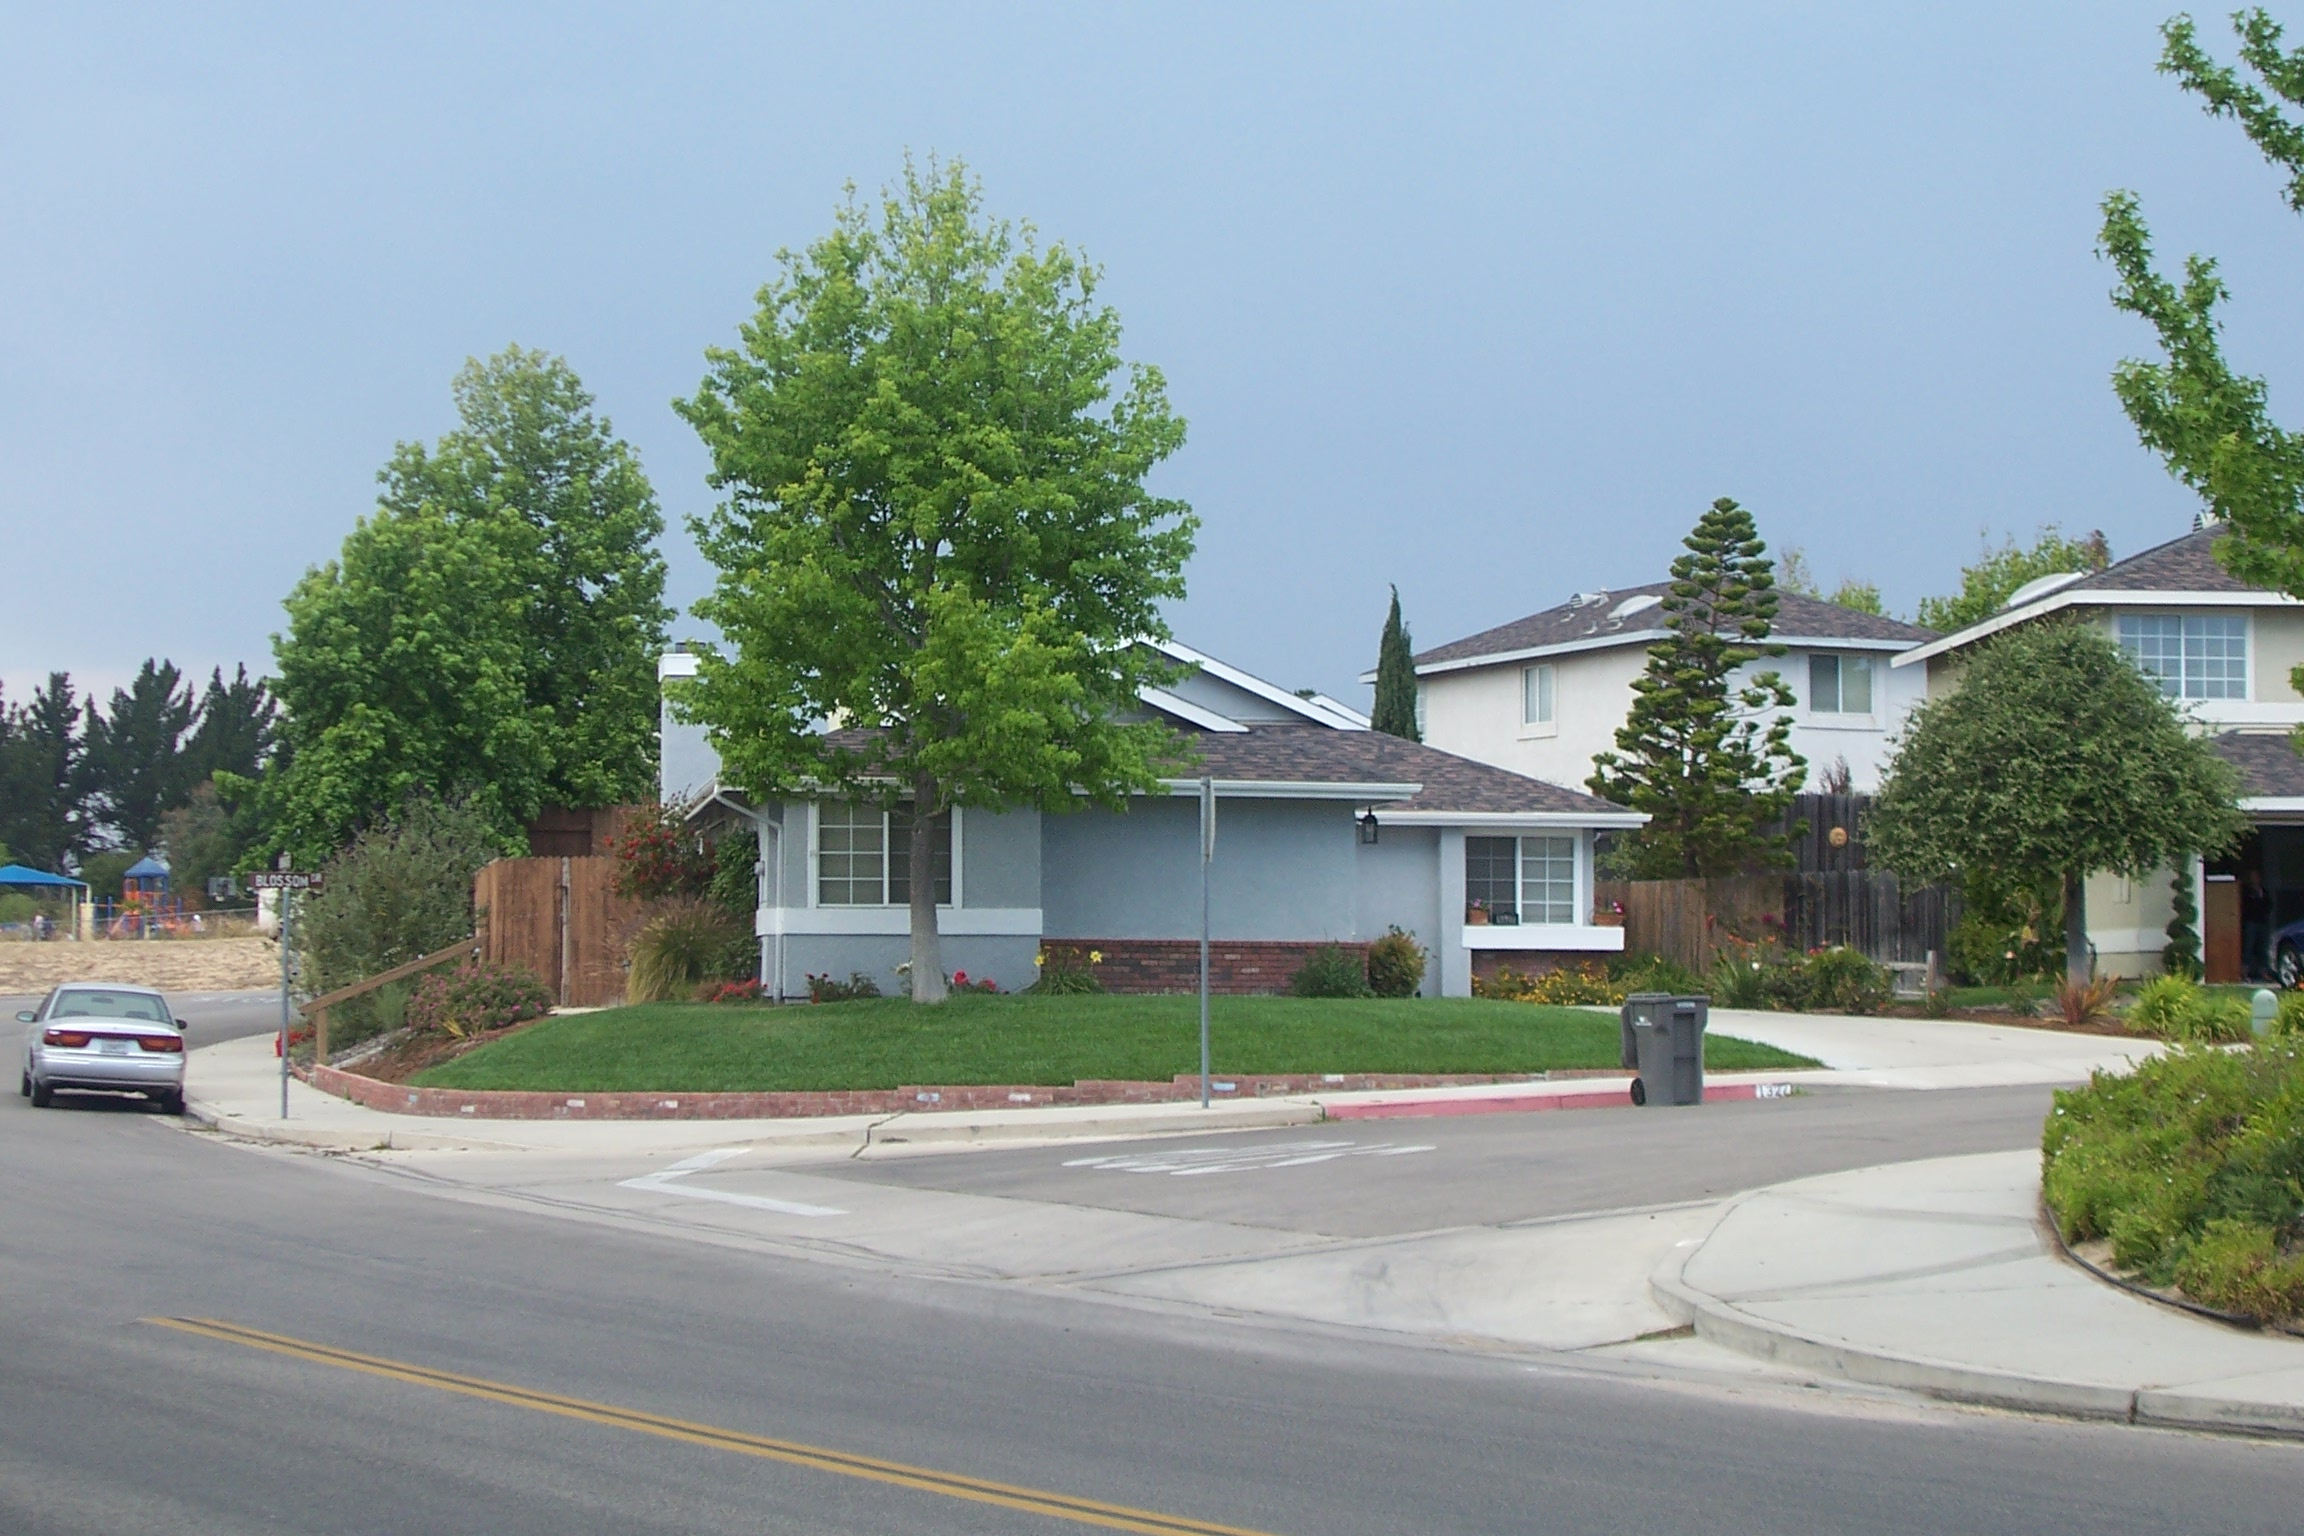 New Homes For Sale In Orcutt Ca